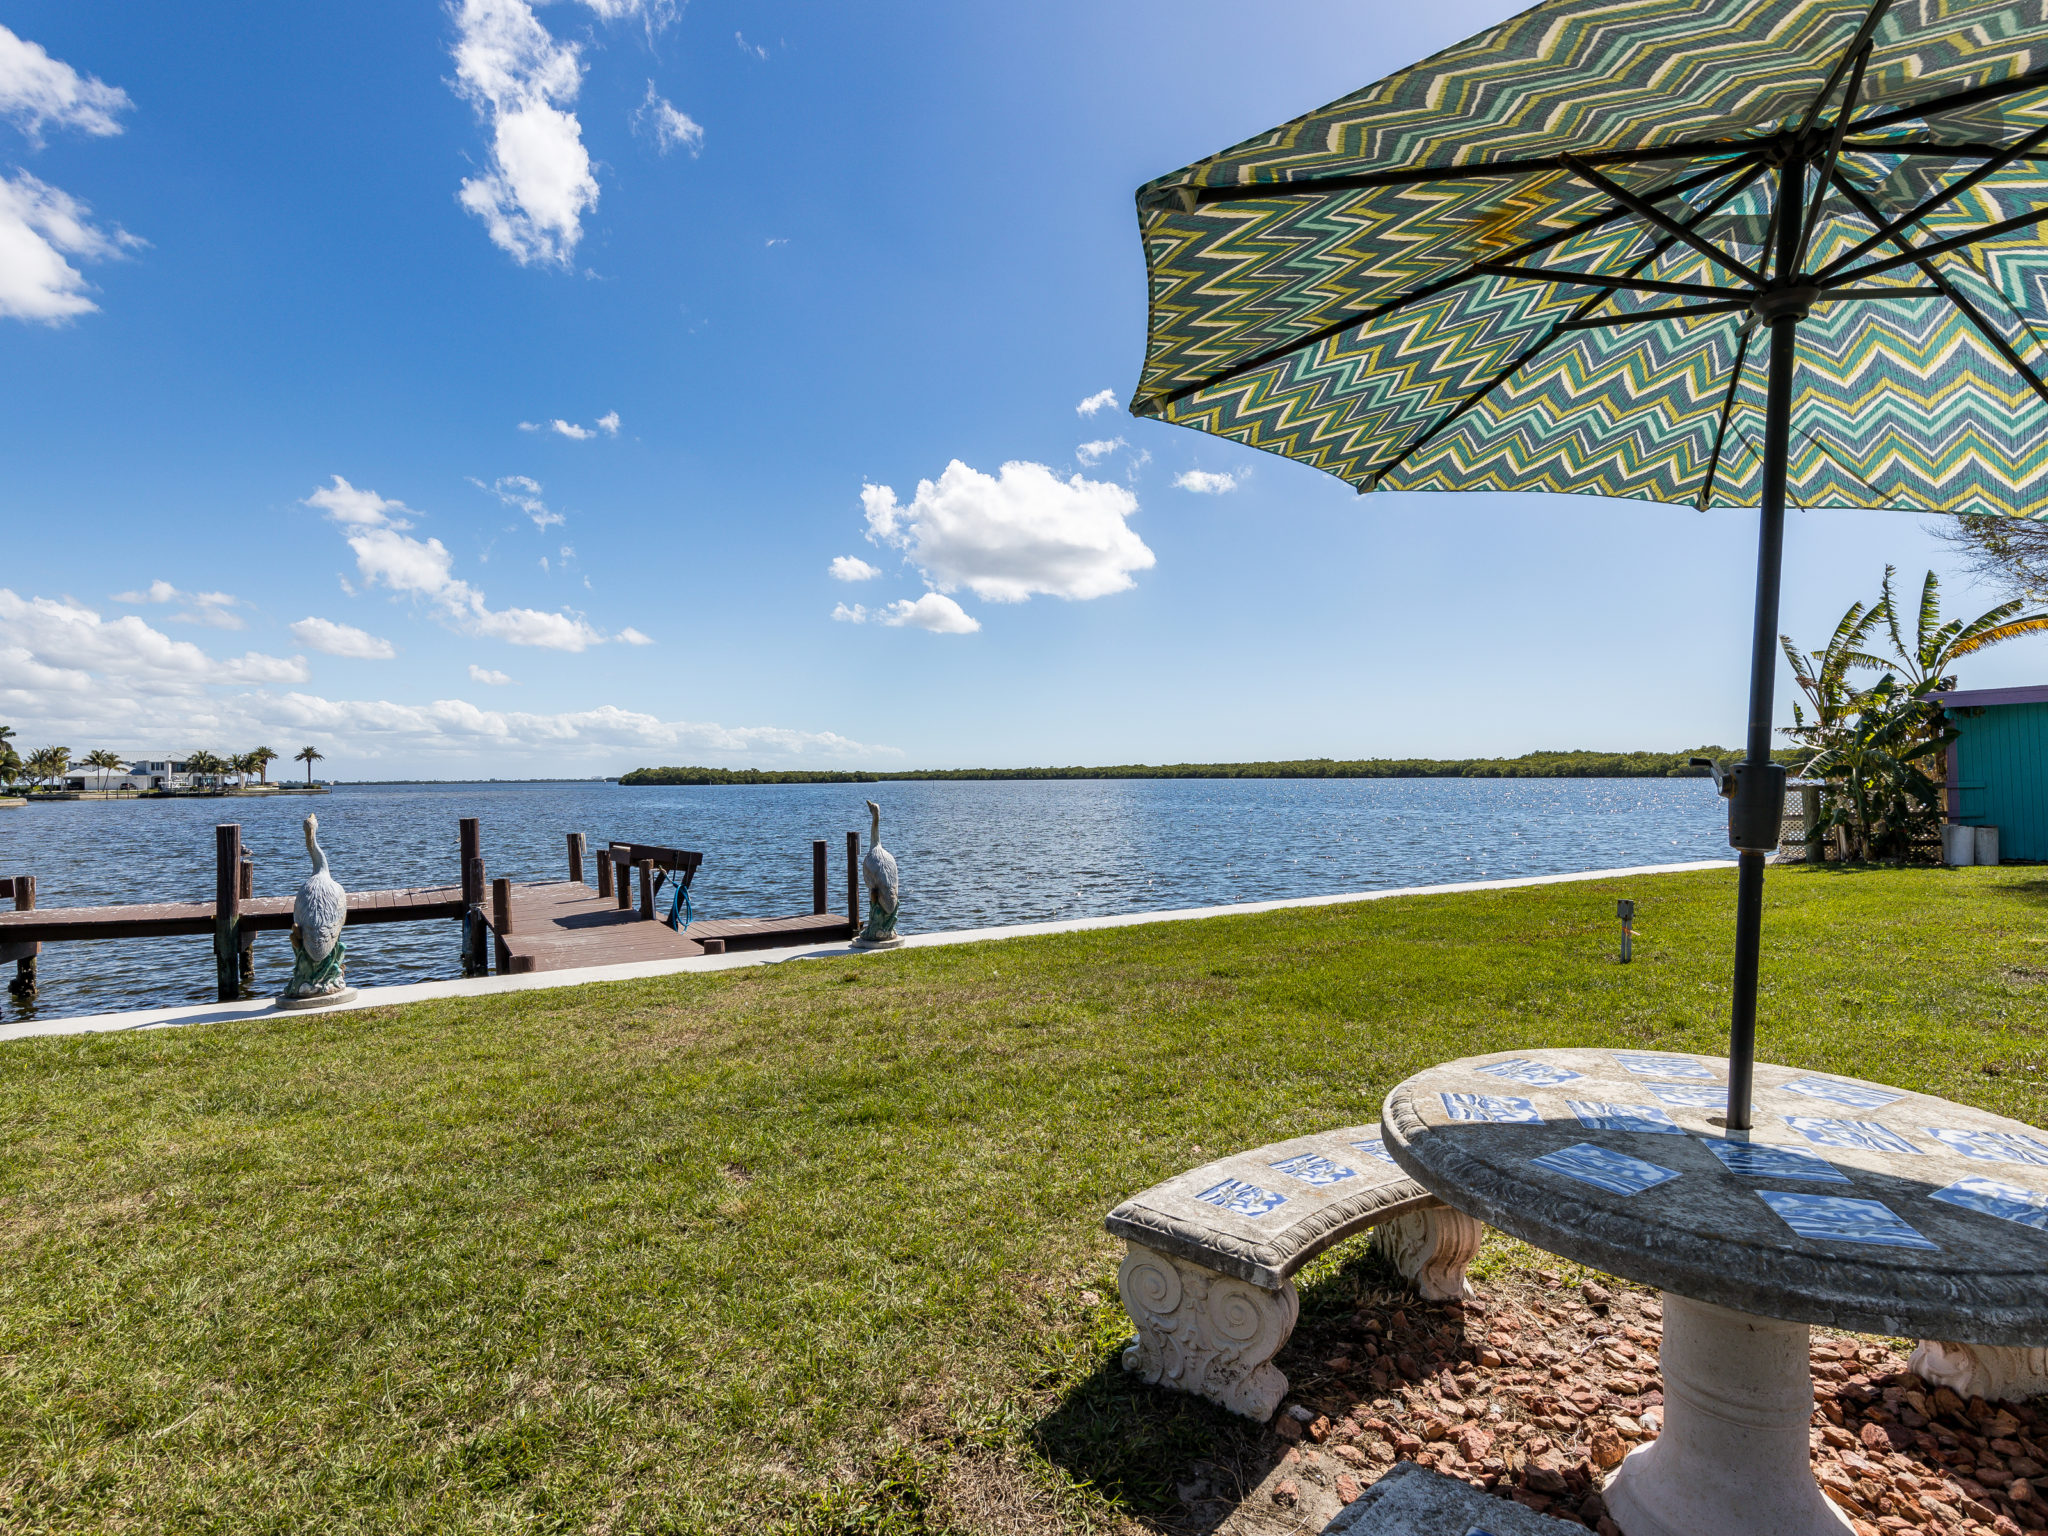 The views are spectacular at Knolls Court Waterfront Motel Matlacha Florida